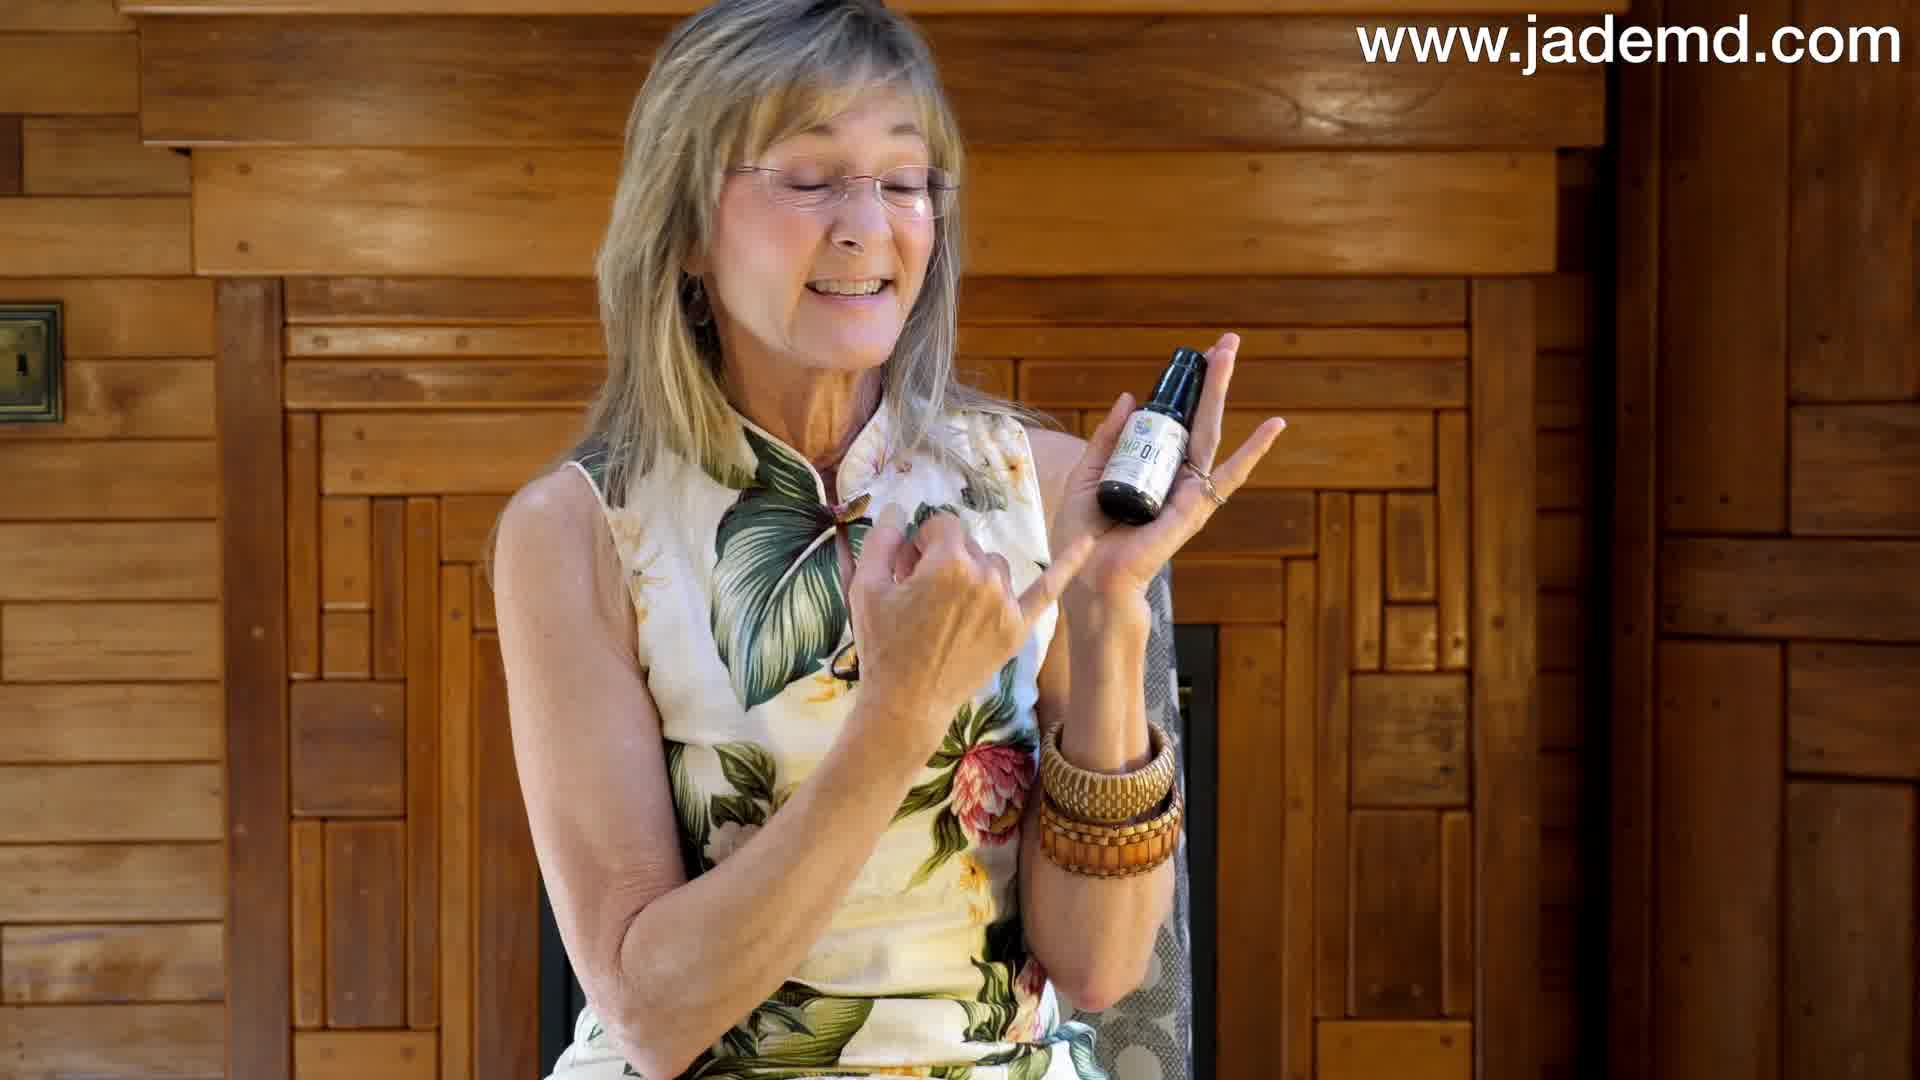 Dr Jade MD Explains Endocannabinoid System, PMD Hemp Oil and YOU.